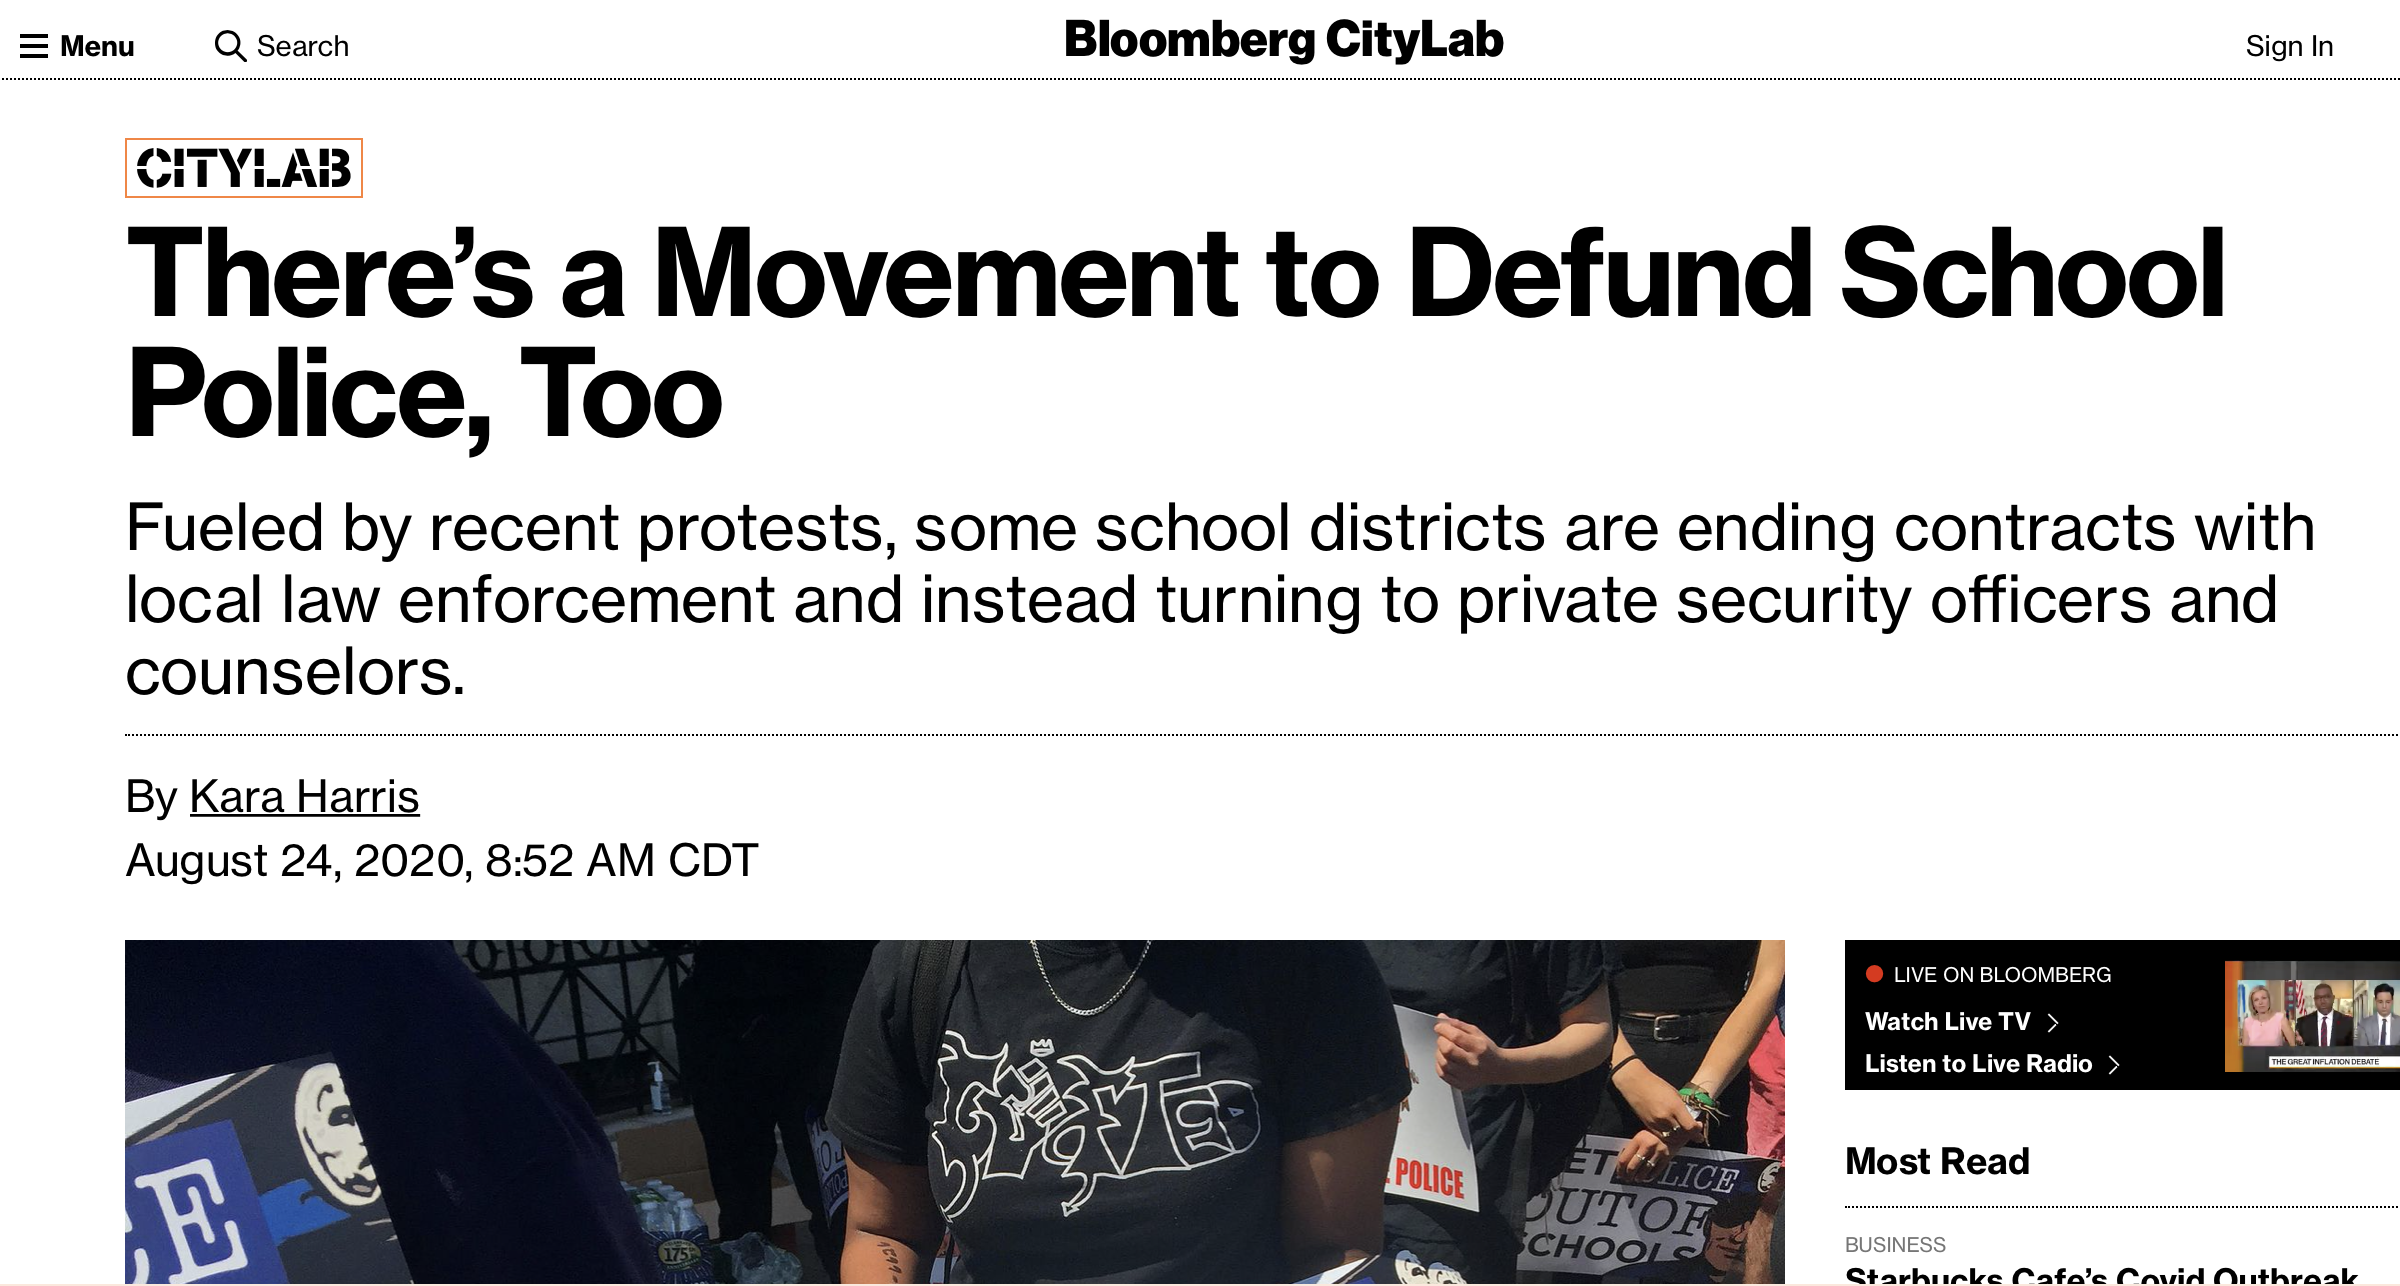 There's a Movement to Defund School Police, Too